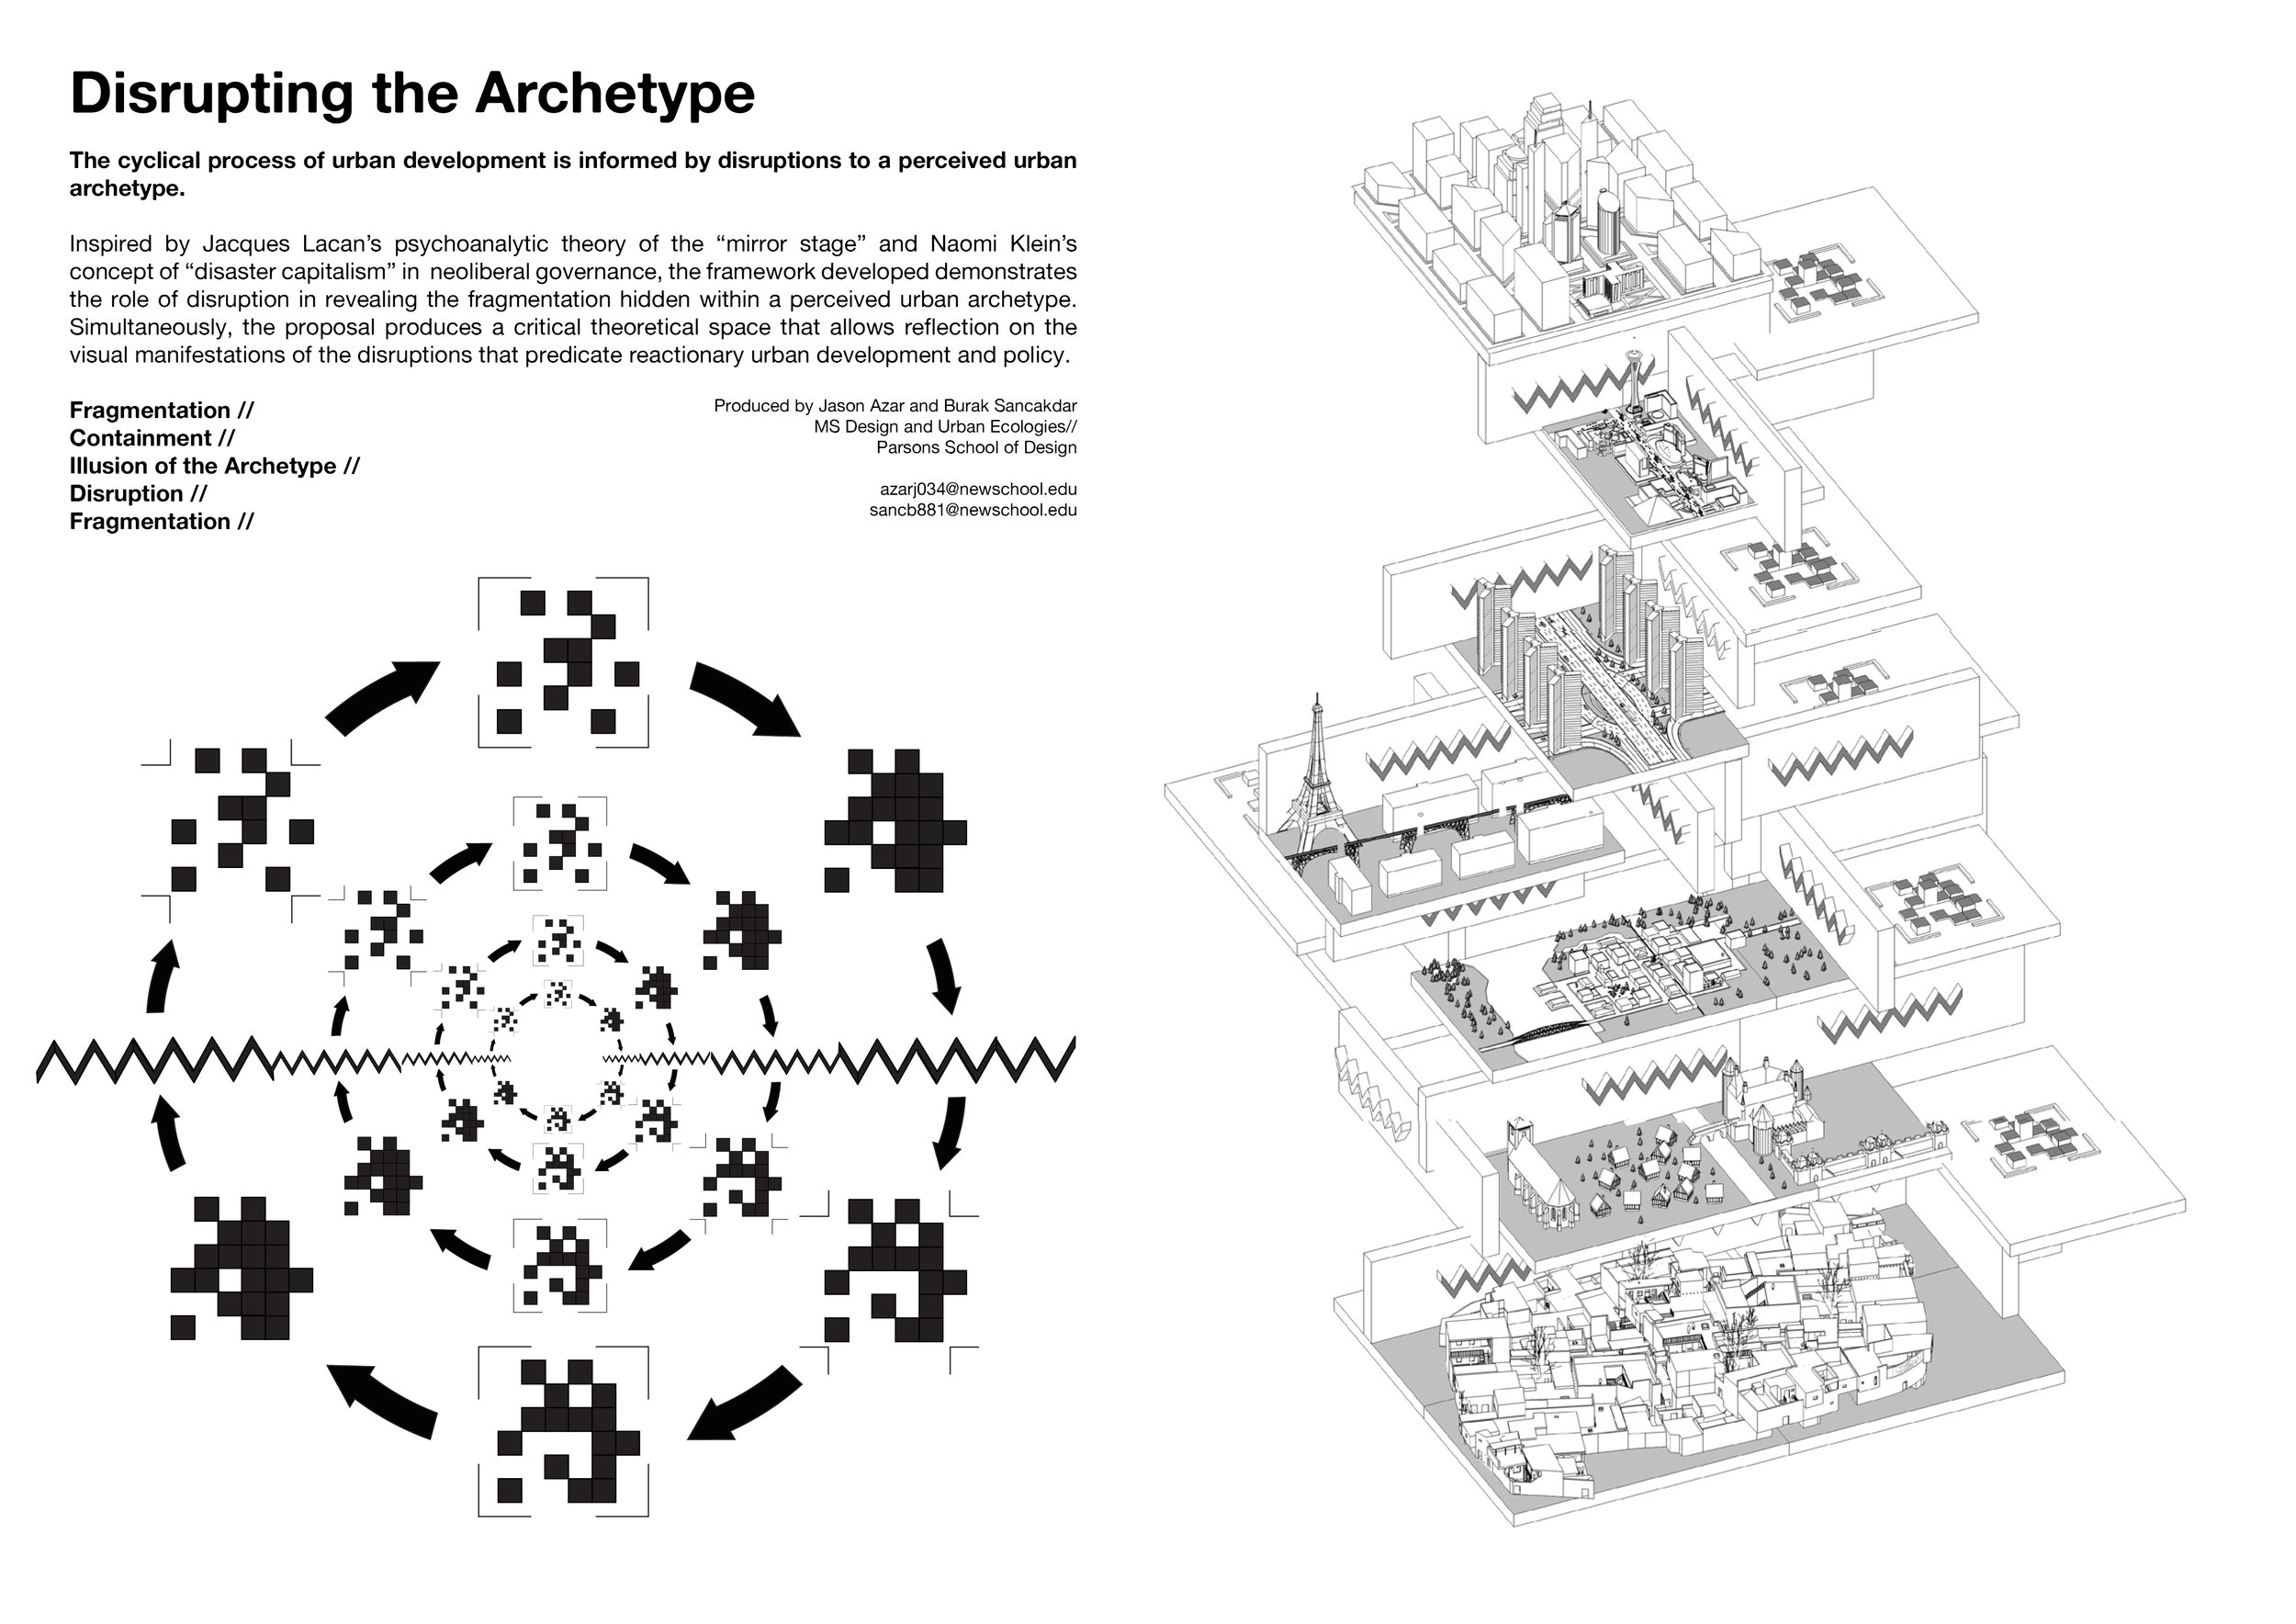 Disrupting the Archetype   Cuarto Magazine - Series 3: Disruption - 2018  Competition winner for a framework that demonstrates through pattern language the role of disruption in revealing the fragmentation hidden within a perceived urban archetype. Simultaneously, the proposal produces a critical theoretical space that allows reflection on the visual manifestations of the disruptions that predicate reactionary urban development and policy.